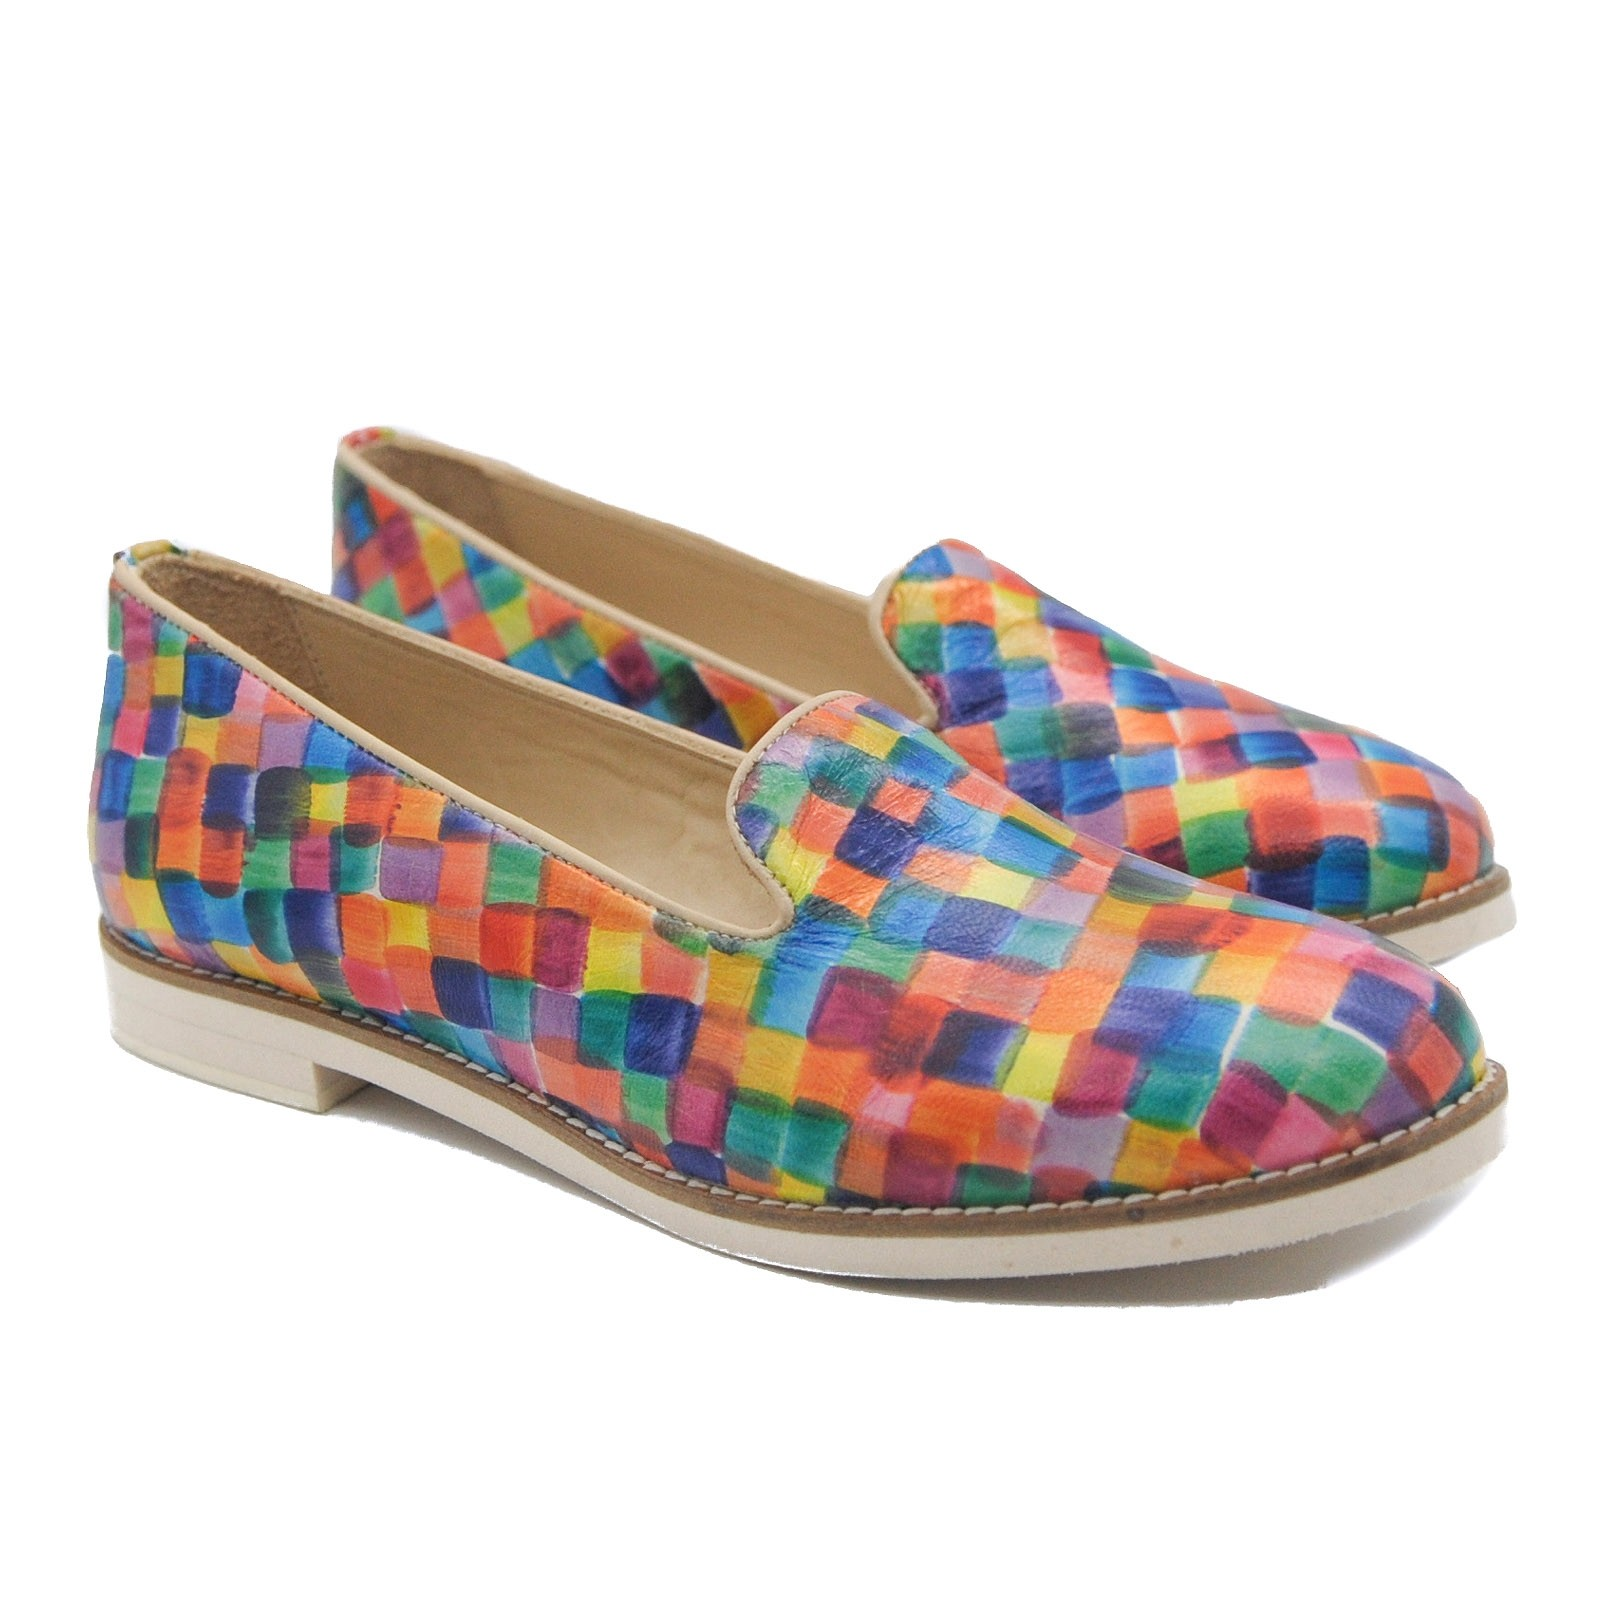 Art Goya Ladies' Leather Loafer Decorated with Multi Coloured Squares